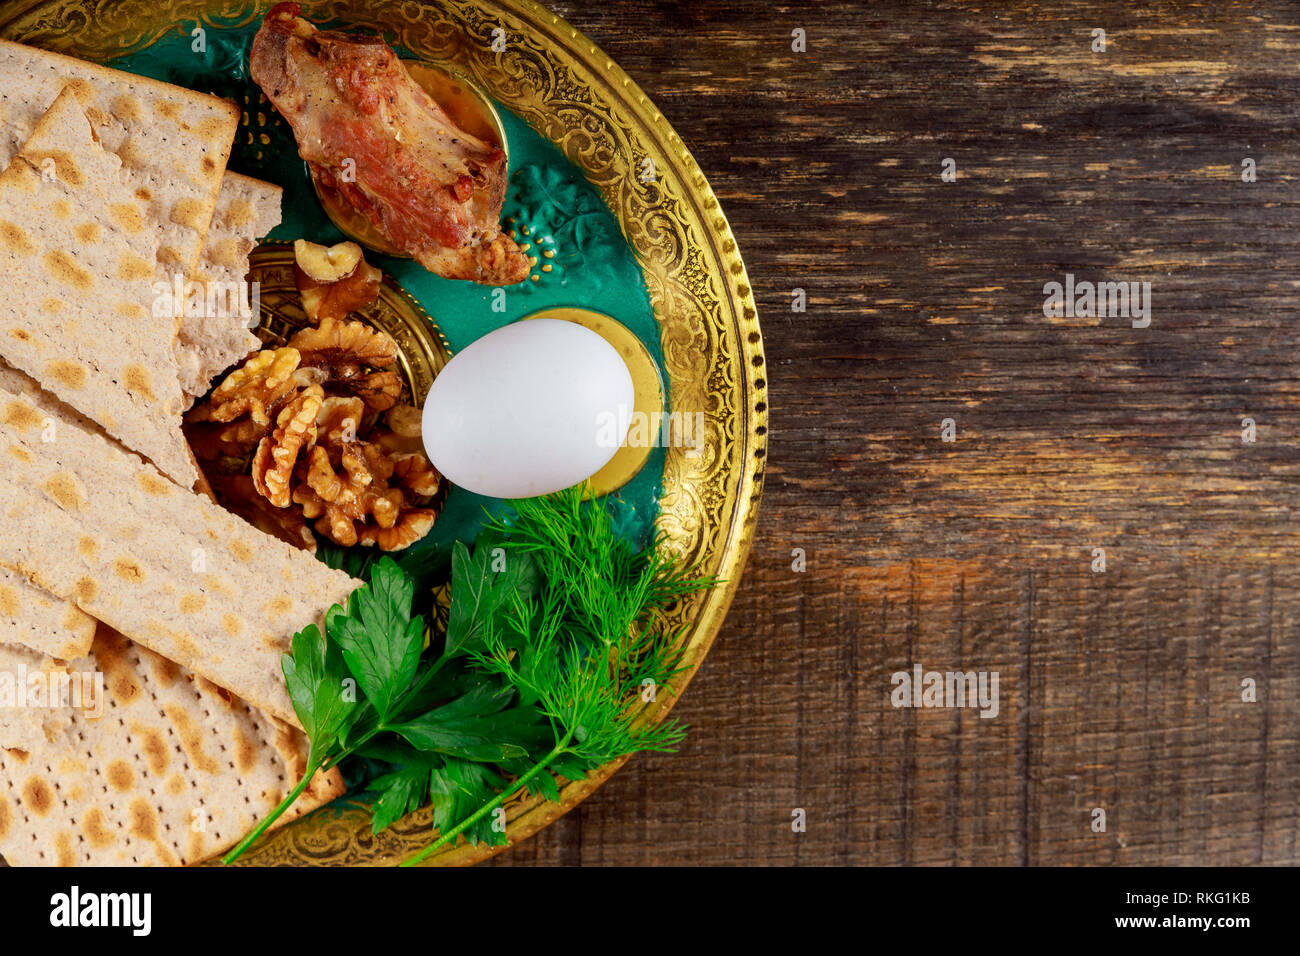 Matzo for Passover with Seder on plate on table close up - Stock Image